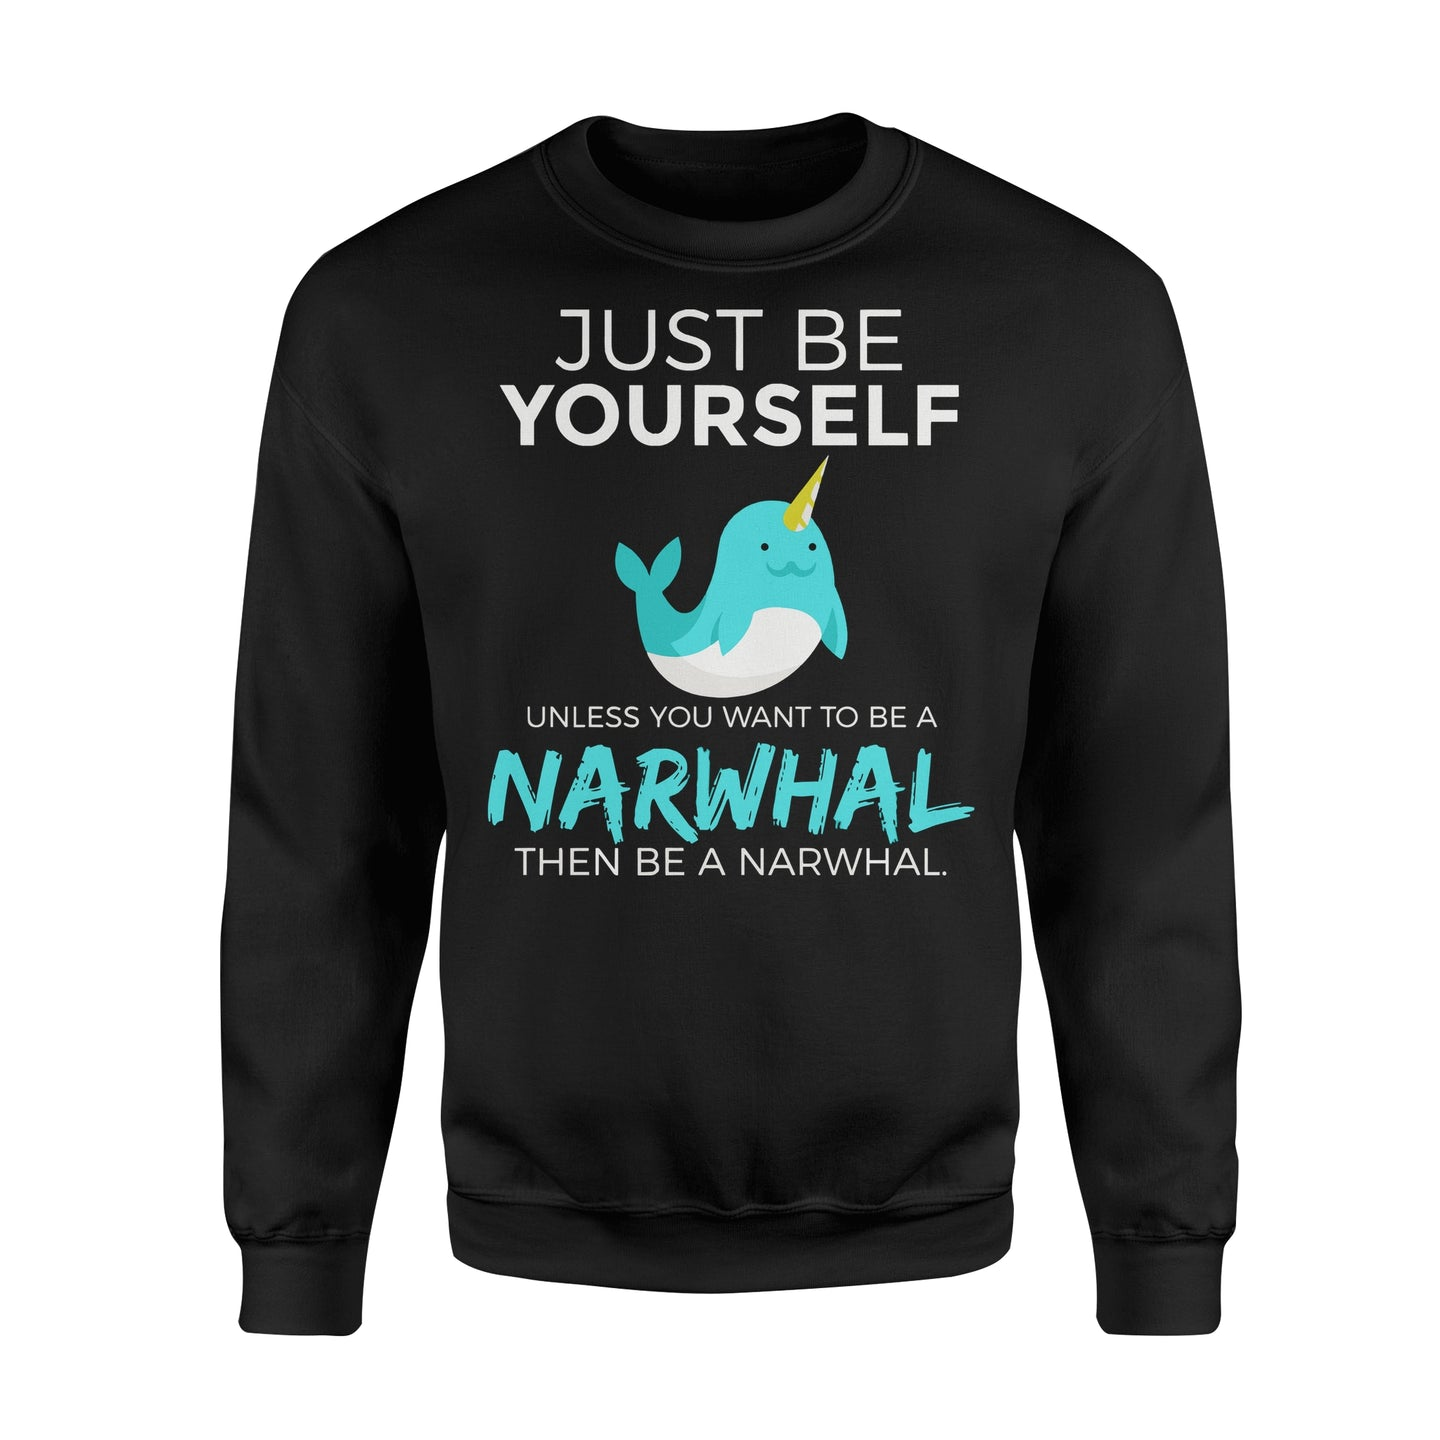 Just Be Yourself Unless You Want To Be A Narwhal - Standard Fleece Sweatshirt Apparel S / Black